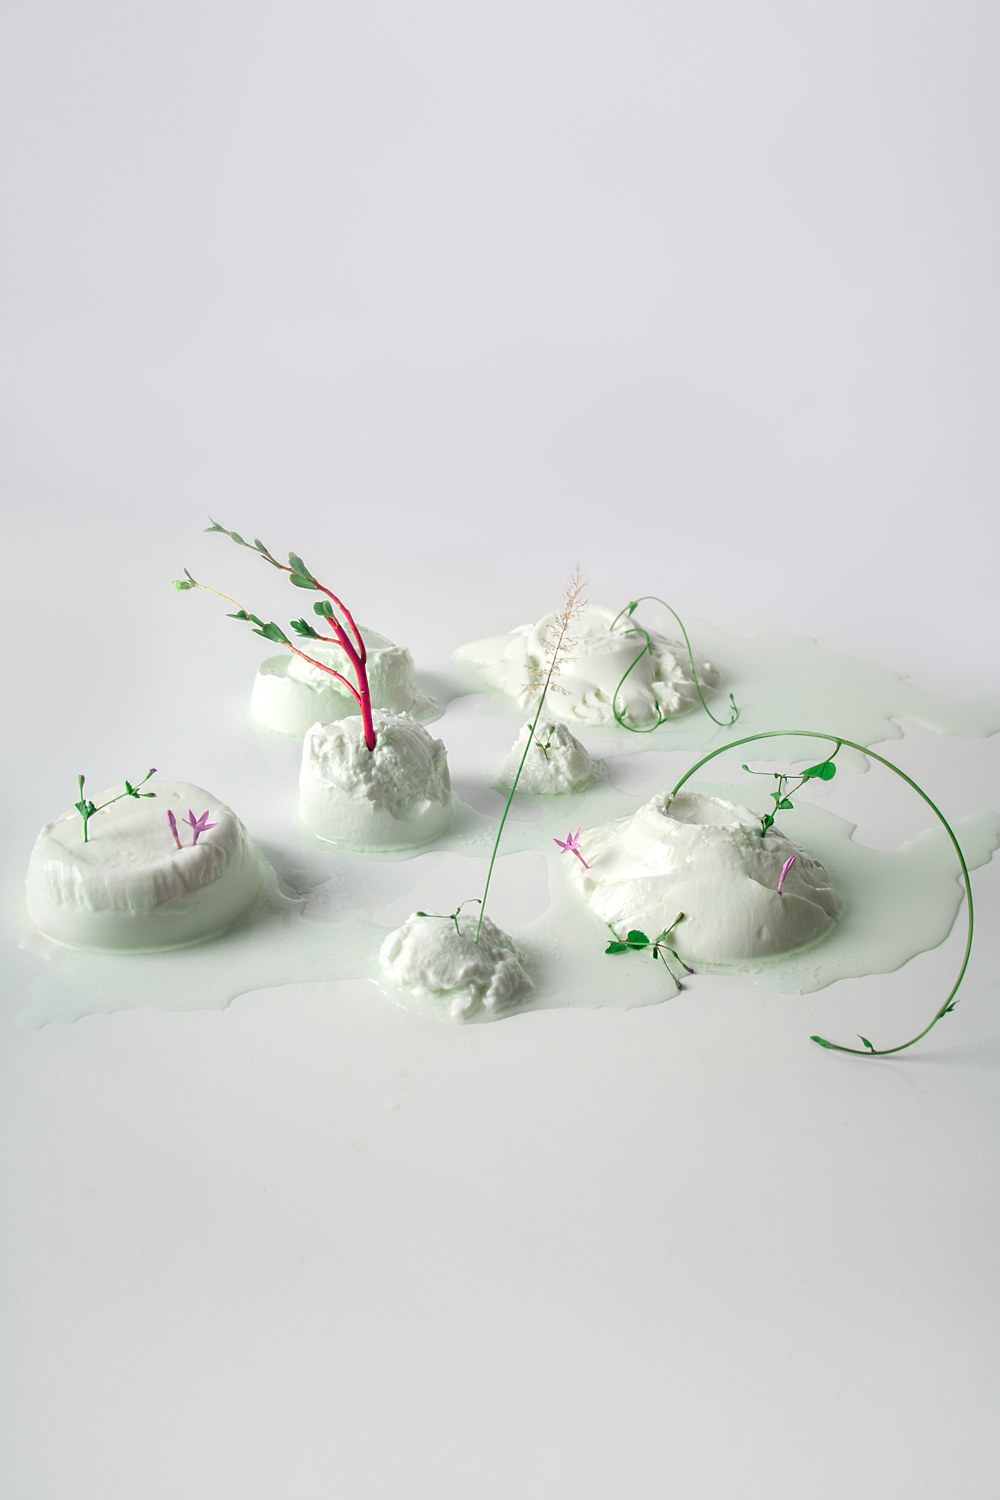 curd with flowers in it